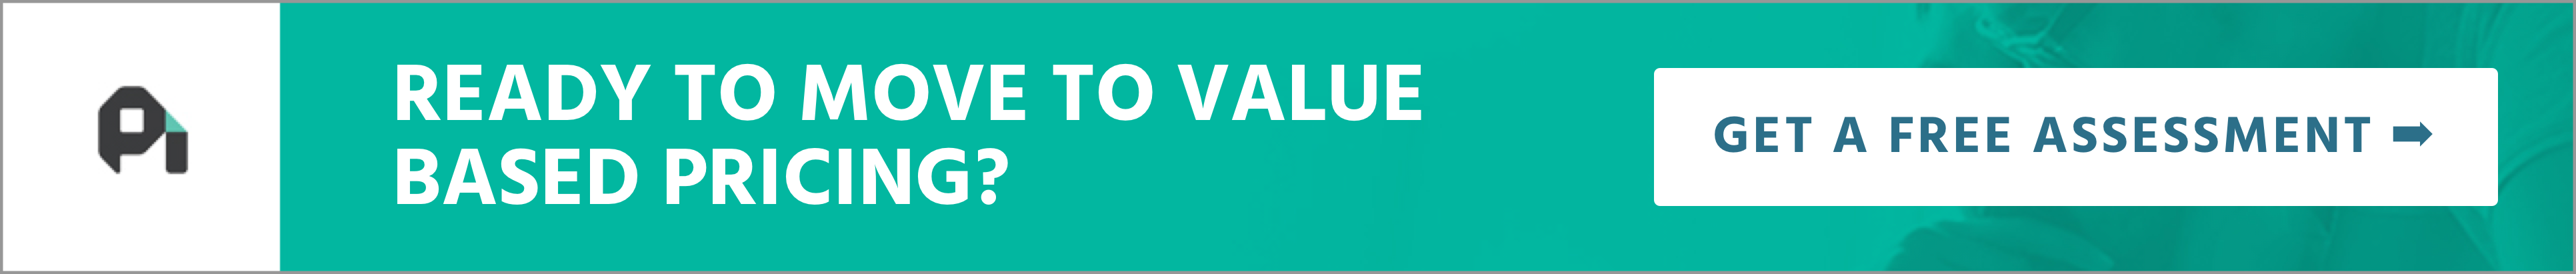 move-to-value-based-pricing-saas.png